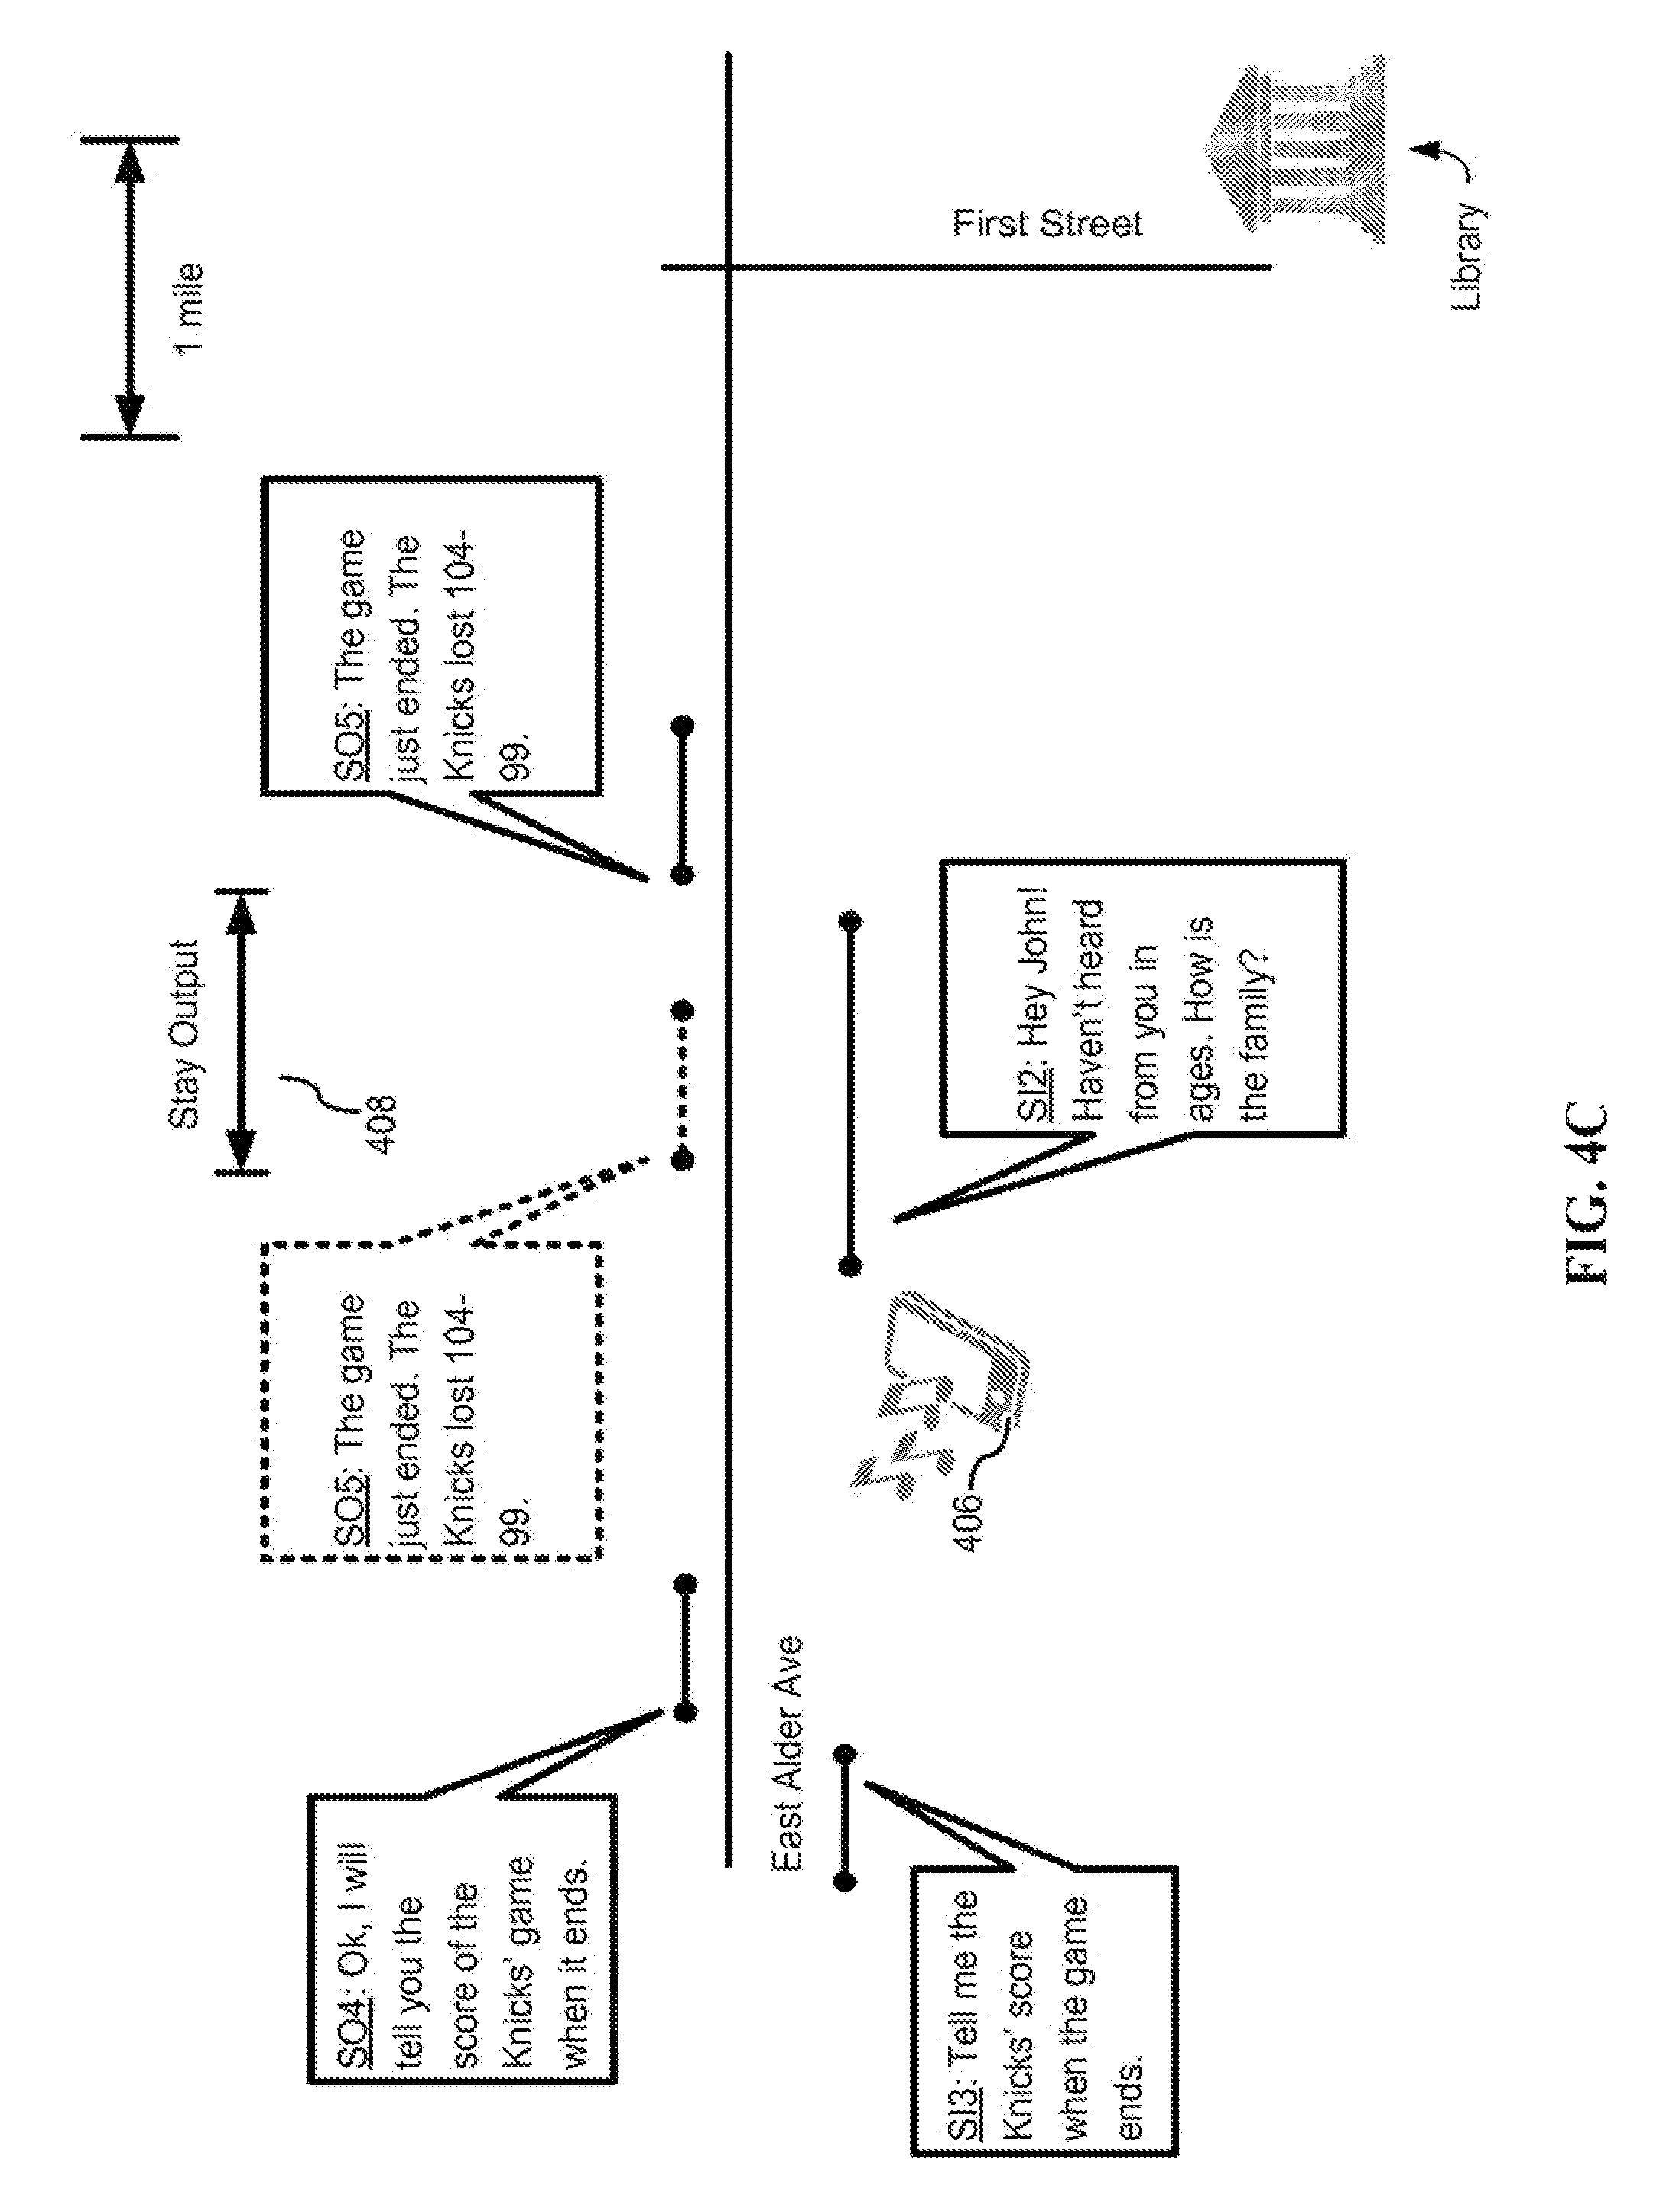 Us9368114b2 context sensitive handling of interruptions google us9368114b2 context sensitive handling of interruptions google patents fandeluxe Images